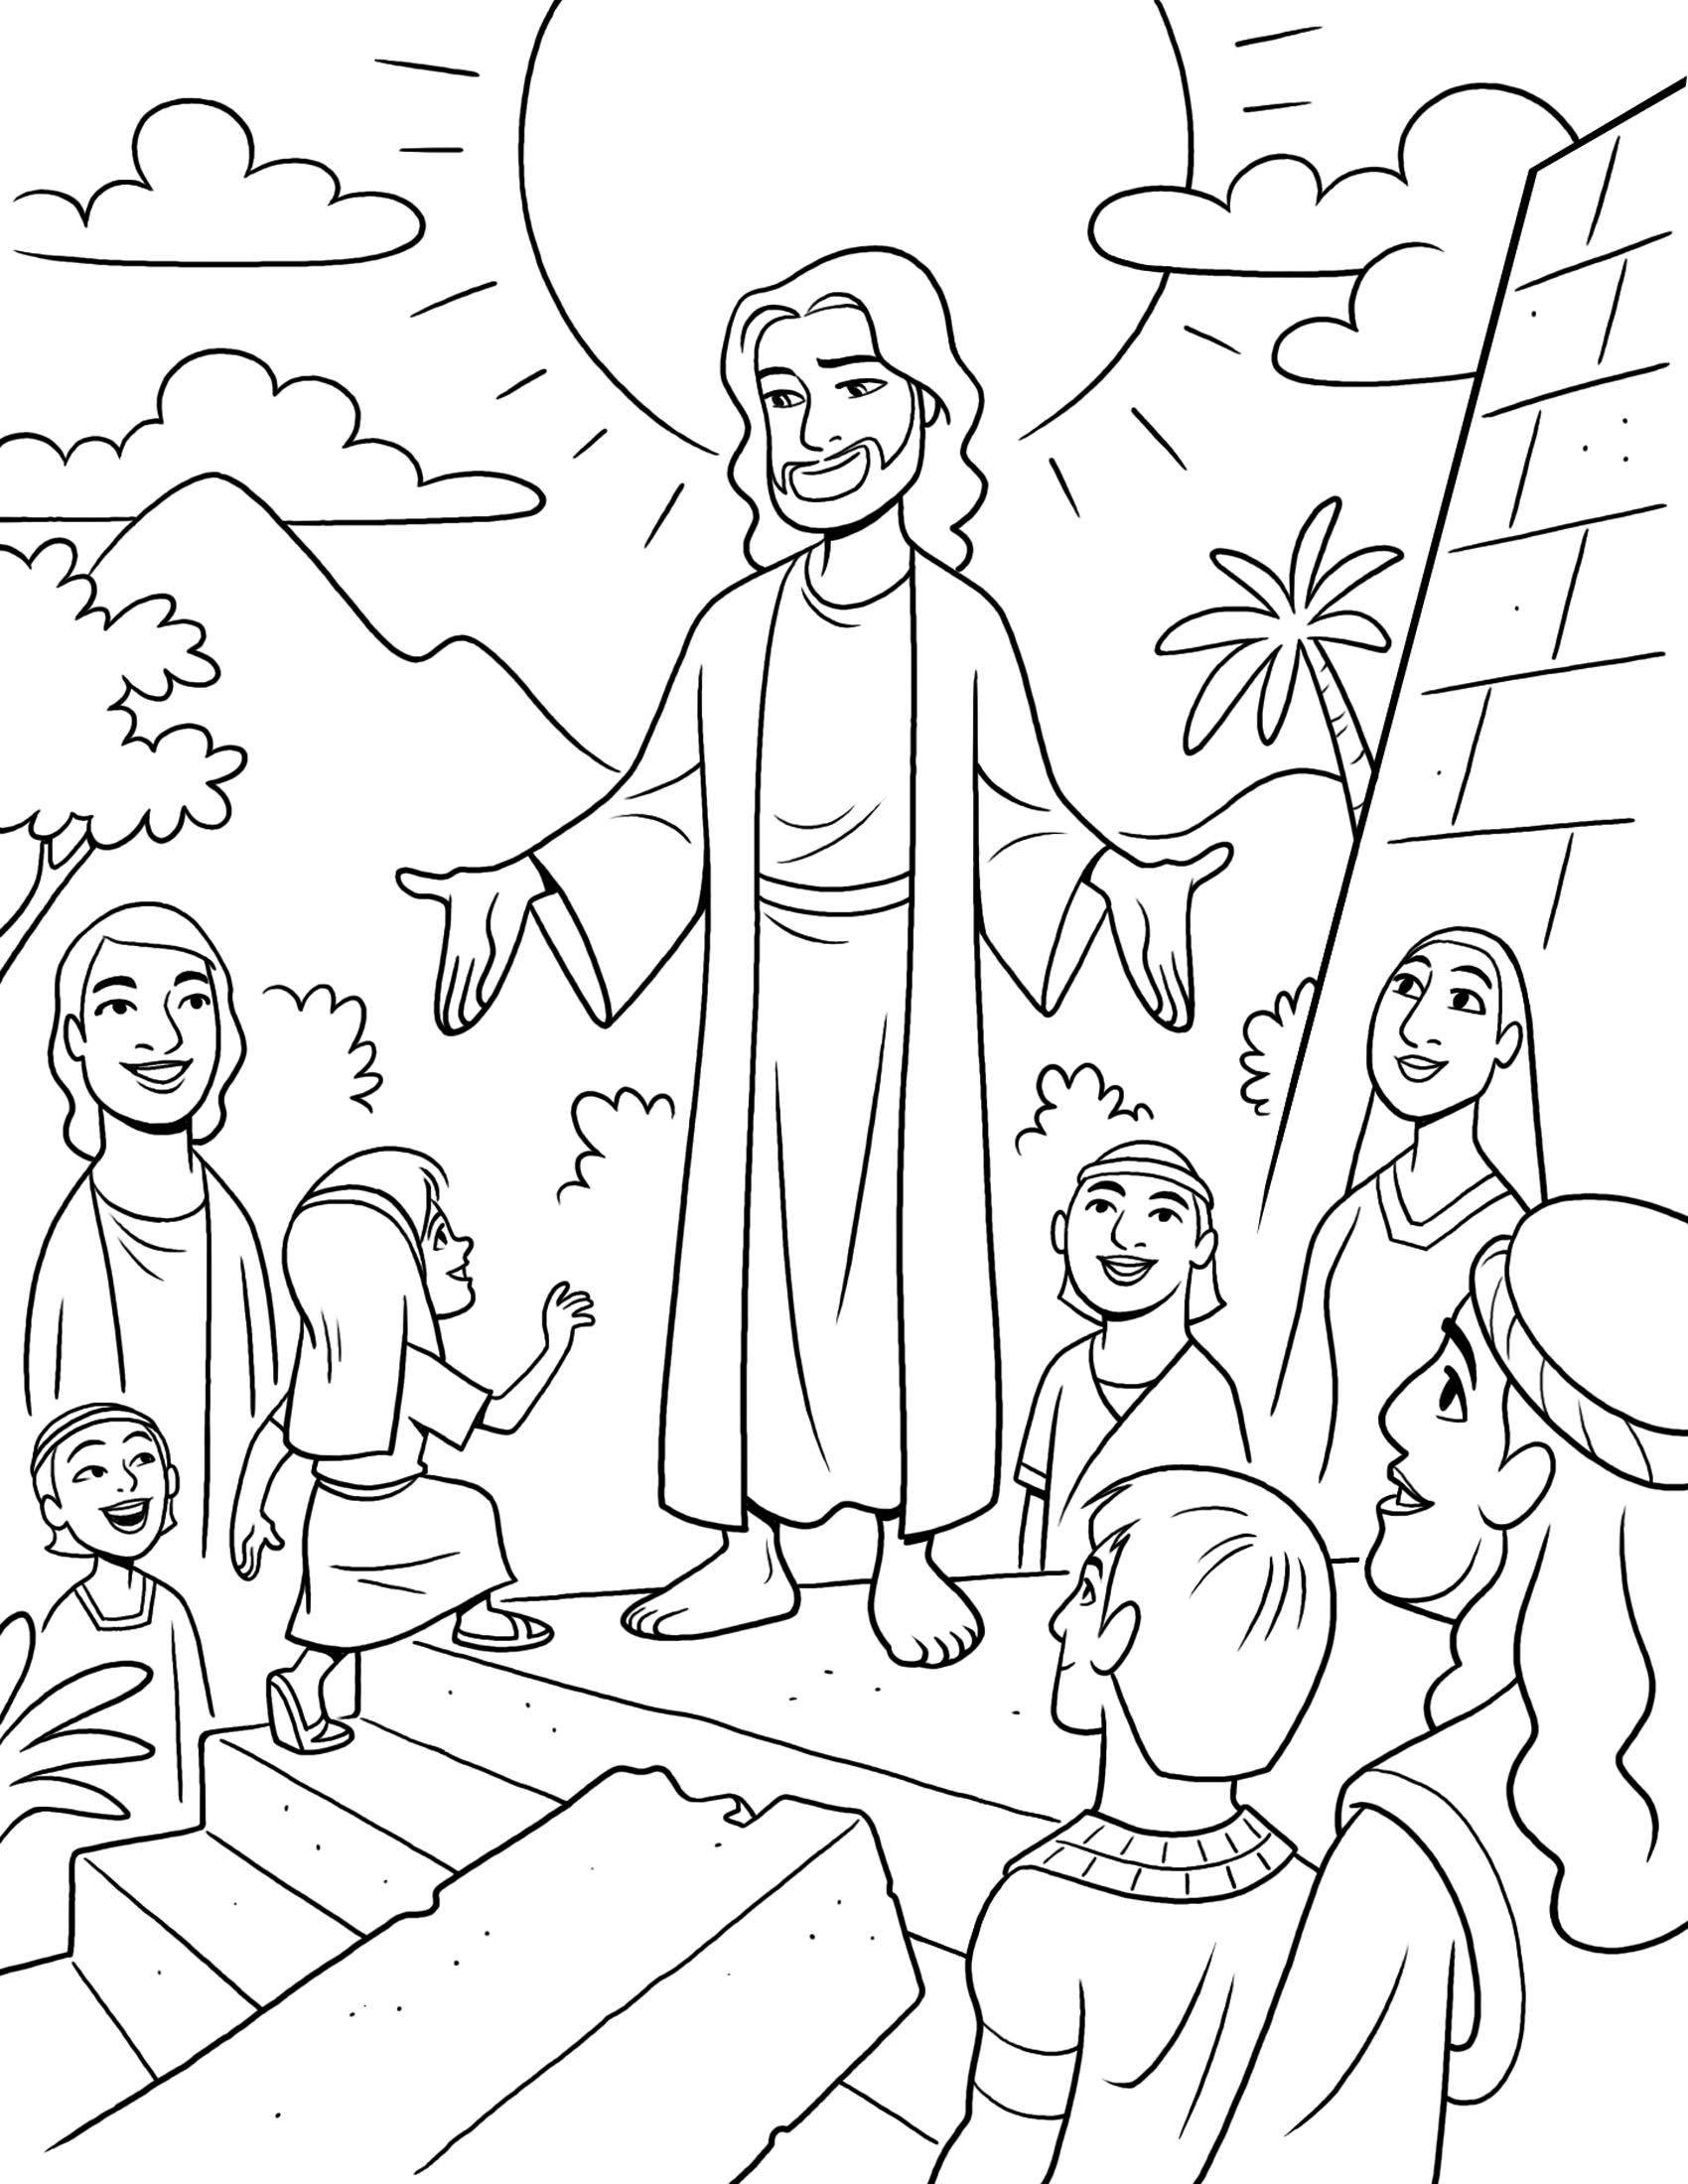 Book Of Mormon Stories This Is A Fun Coloring Page Of Jesus